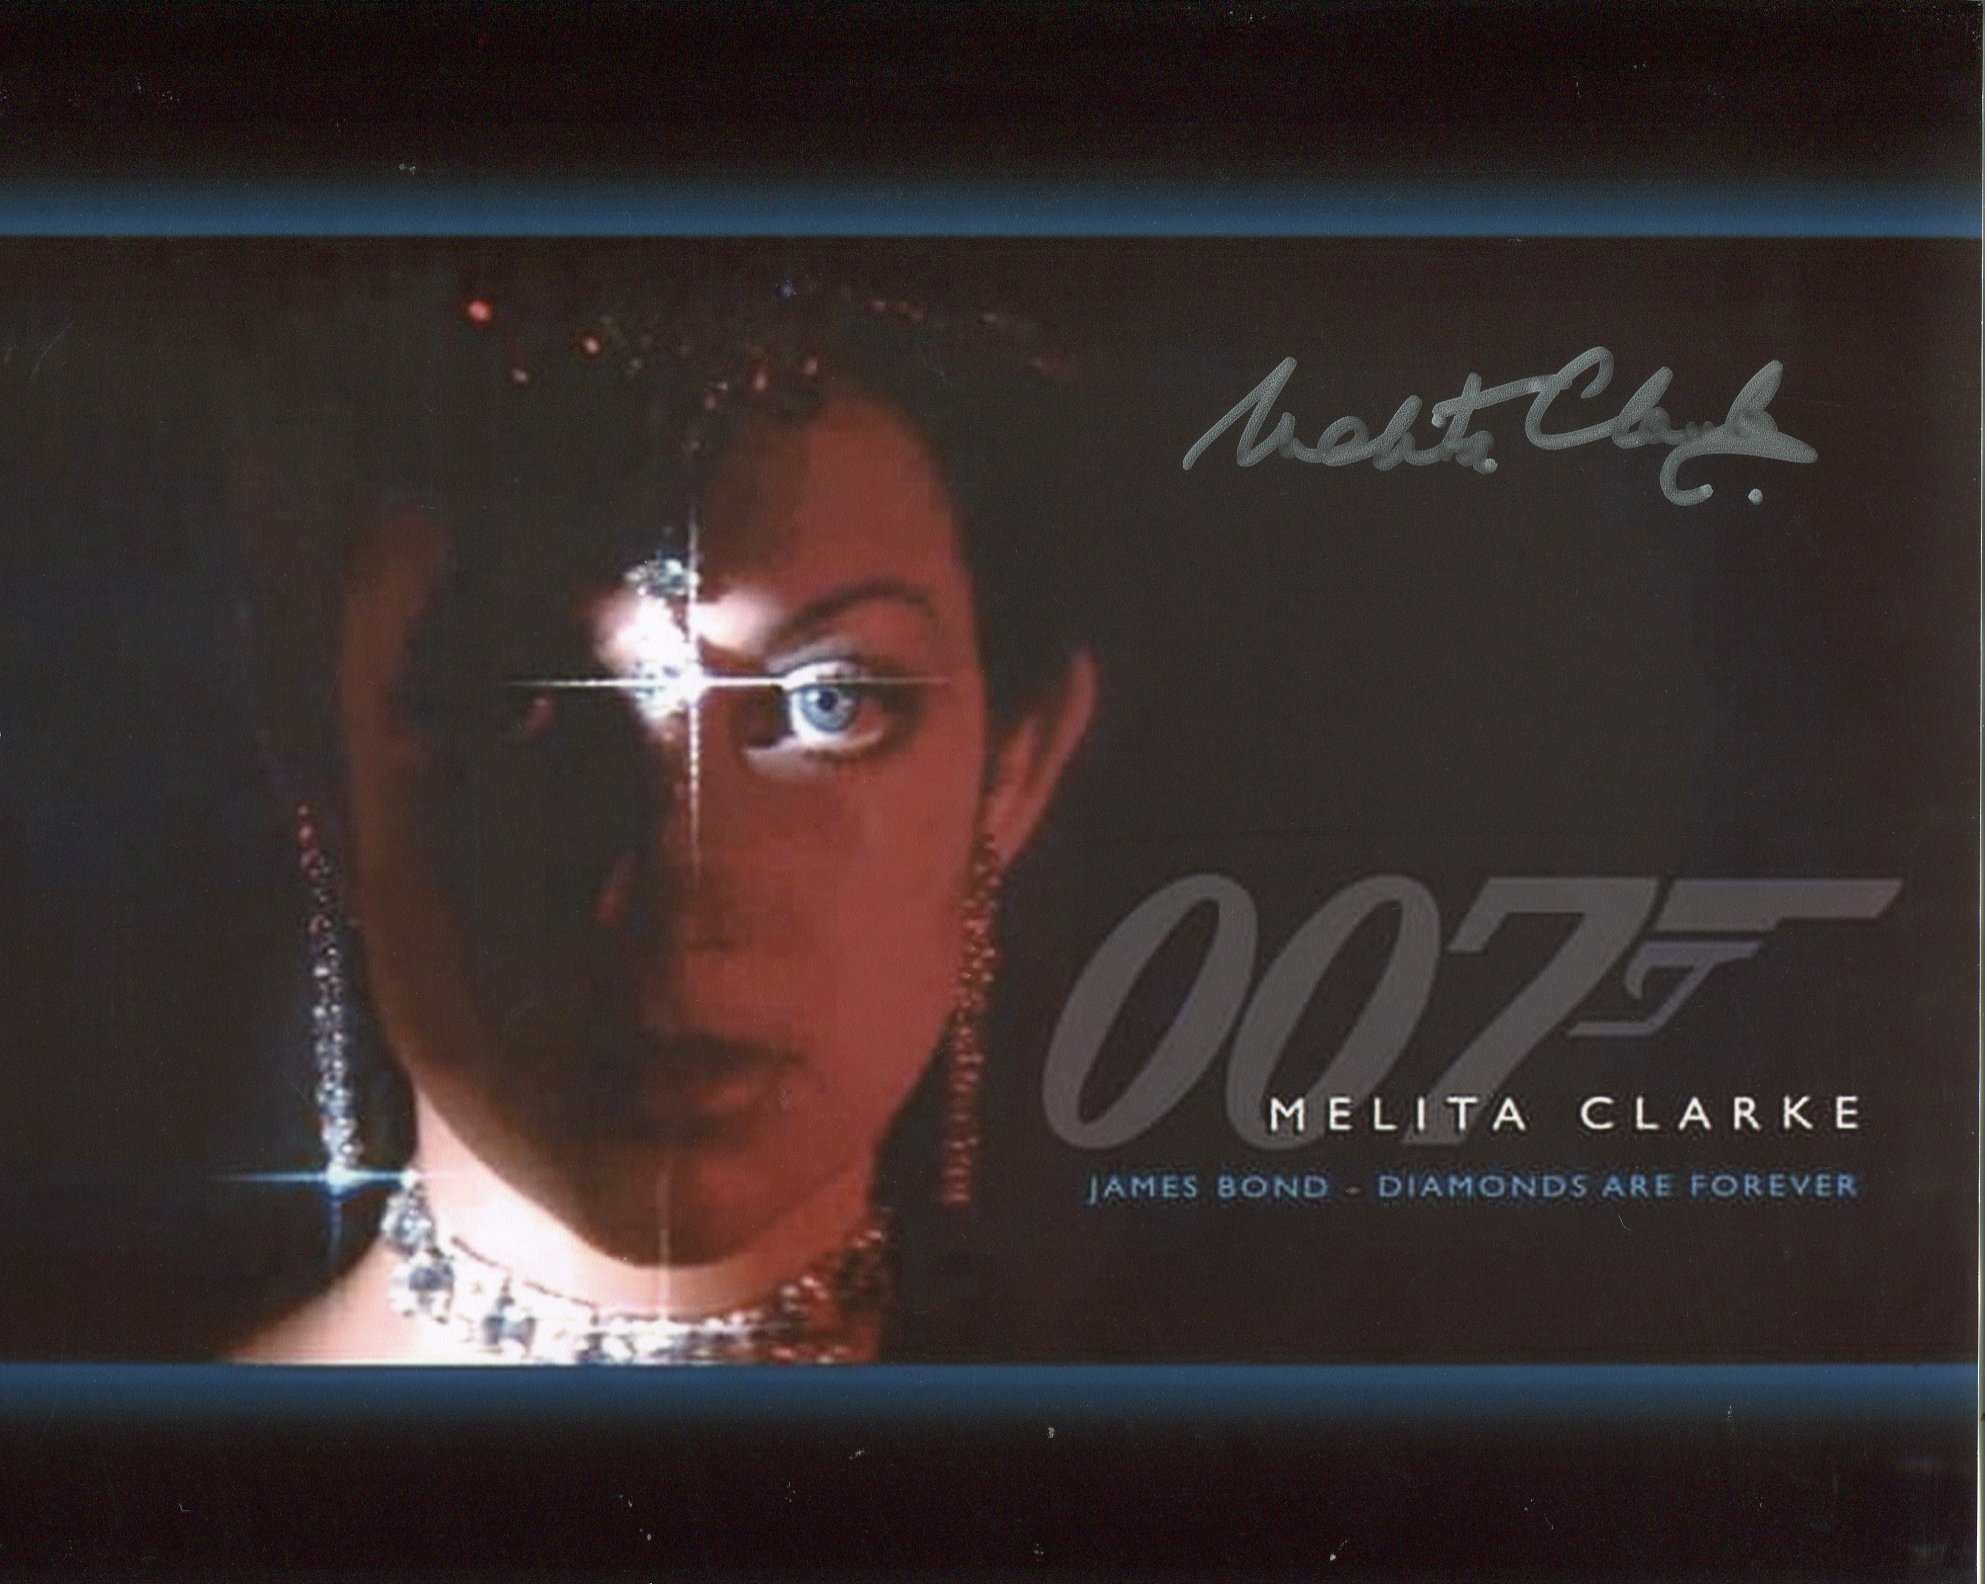 007 Bond girl Melita Clarke signed 8x10 photo from Diamonds are Forever. Good condition. All